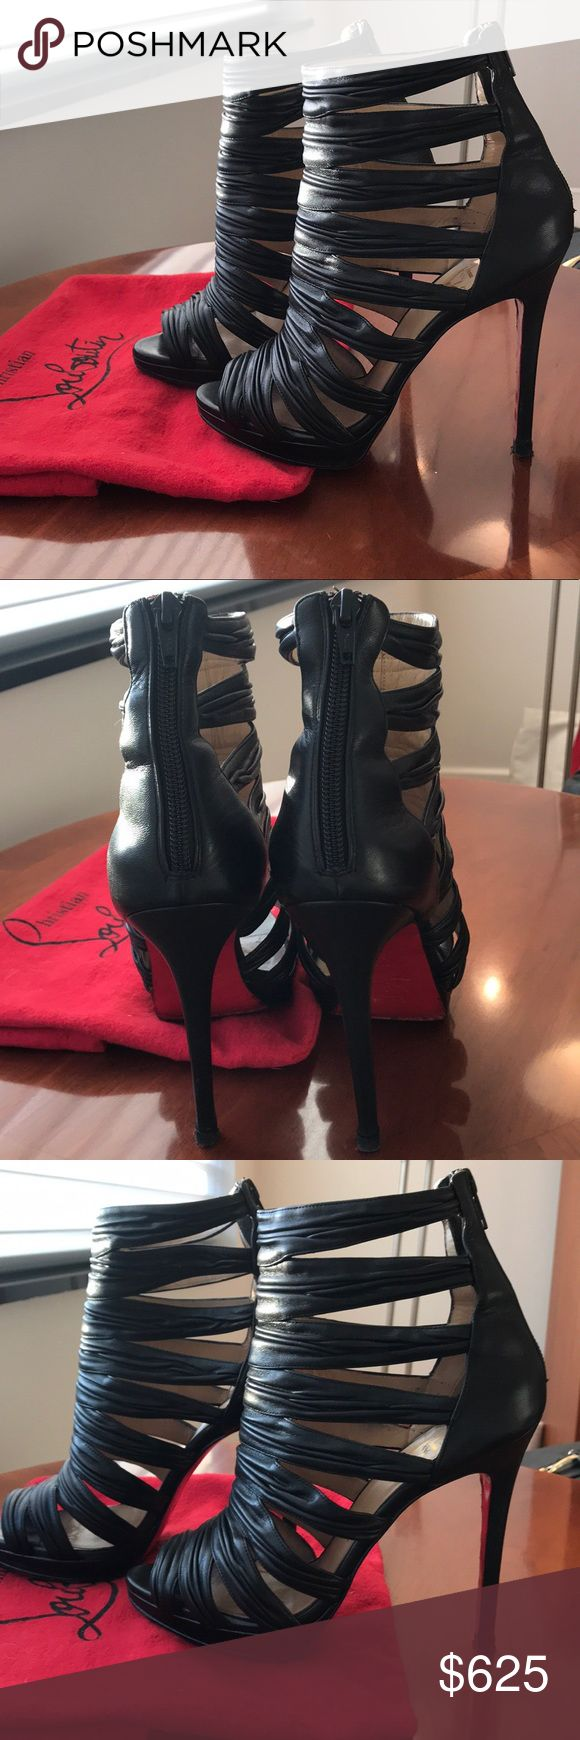 """Christian Louboutin Peep Toe Sandals ❤️ Christian Louboutin strappy black leather sandals Comes with original dust cover and sole protector, no box  Made in Italy  Size: US 7  (37 Euro) Heel height: 5"""" Platform height 1/2"""" Beige leather interior Seller based in Manhattan, New York Pre-worn, good condition Christian Louboutin Shoes Heels"""